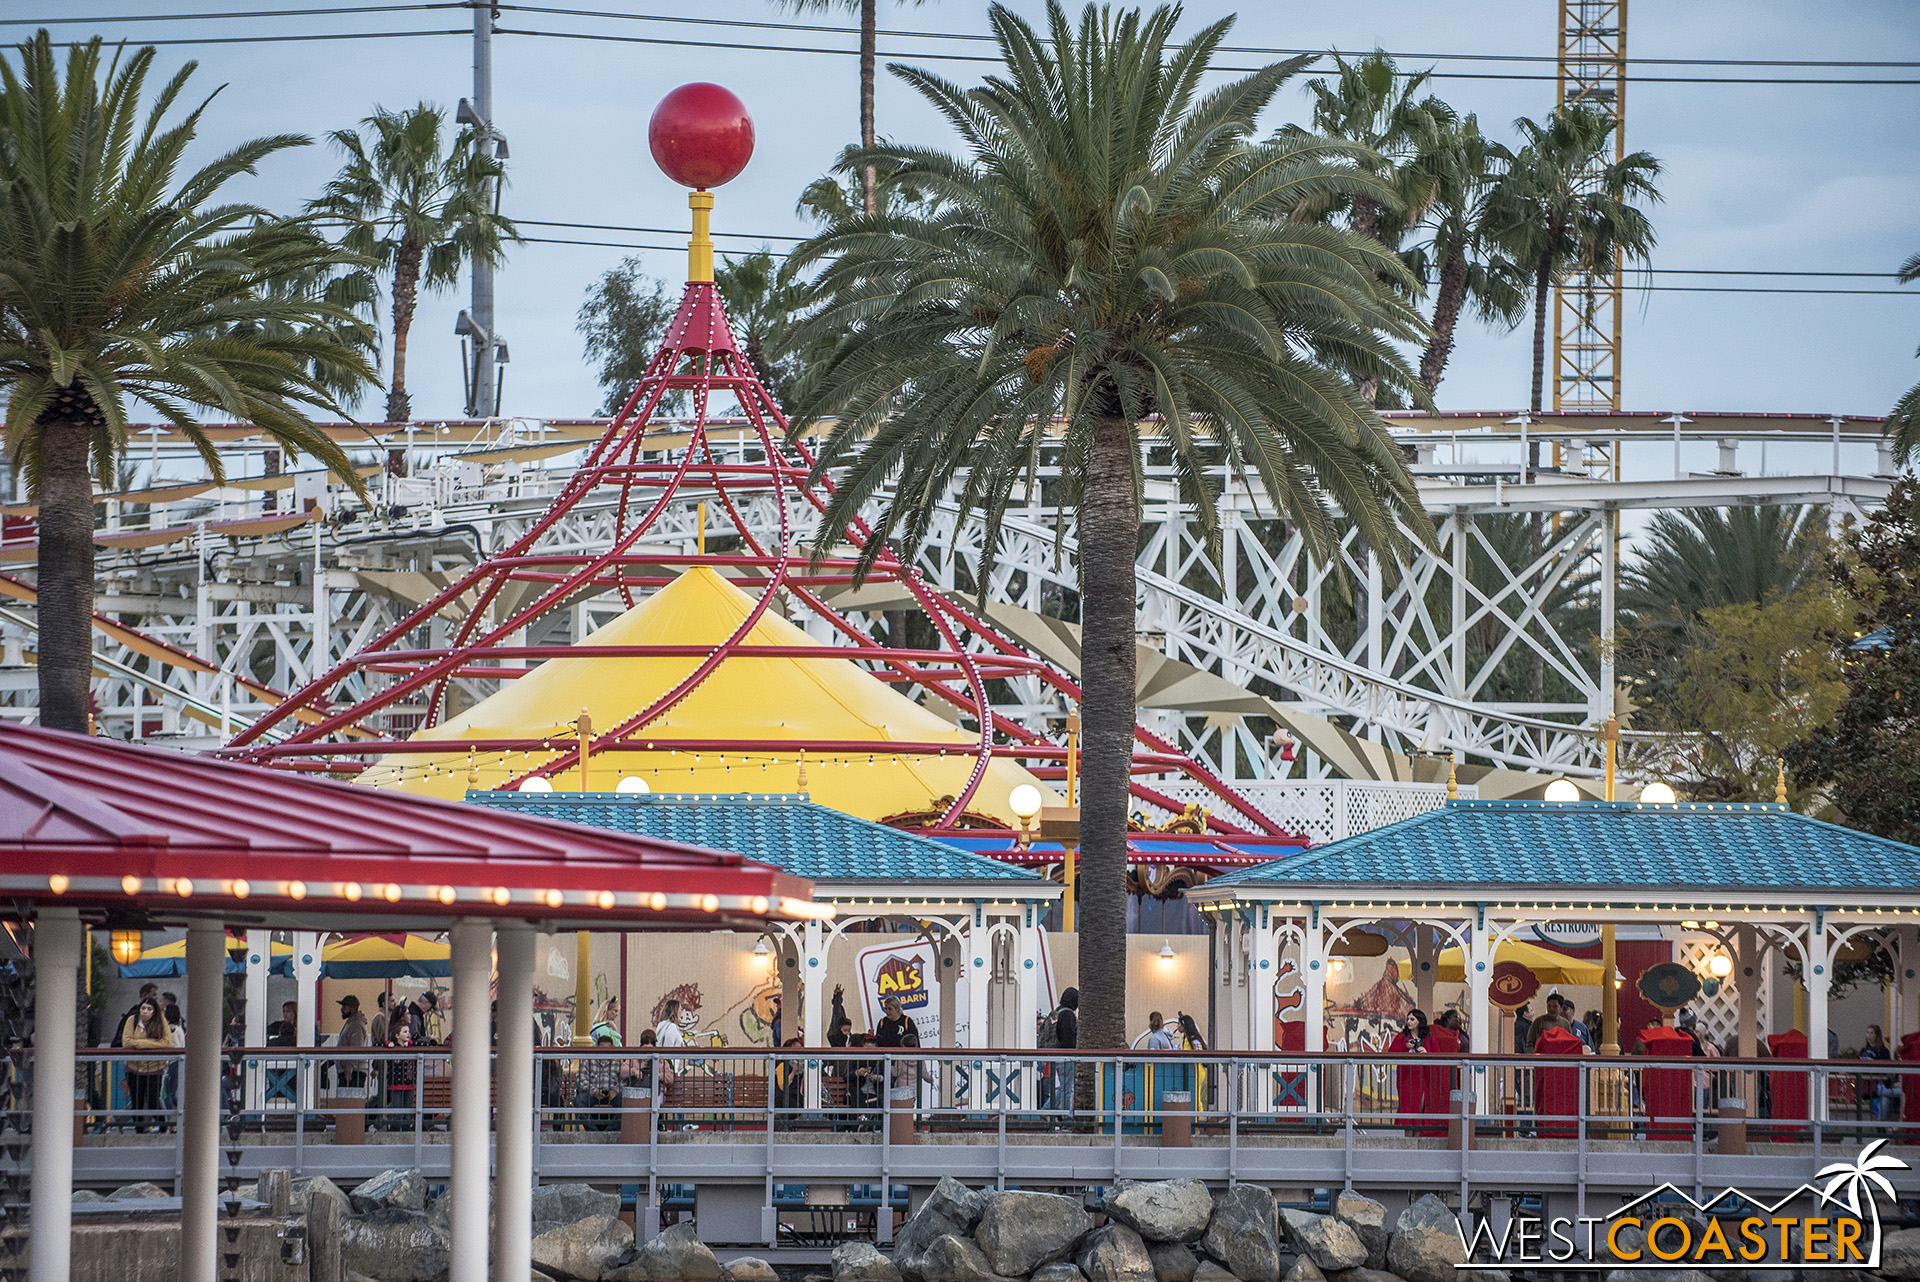 The roofs elsewhere in the Toy Story part of Pixar Pier are turquoise.  So what do they paint the top of Jessie's Critter Carousel?  Yellow, of course.  Well, it does go better with the red.